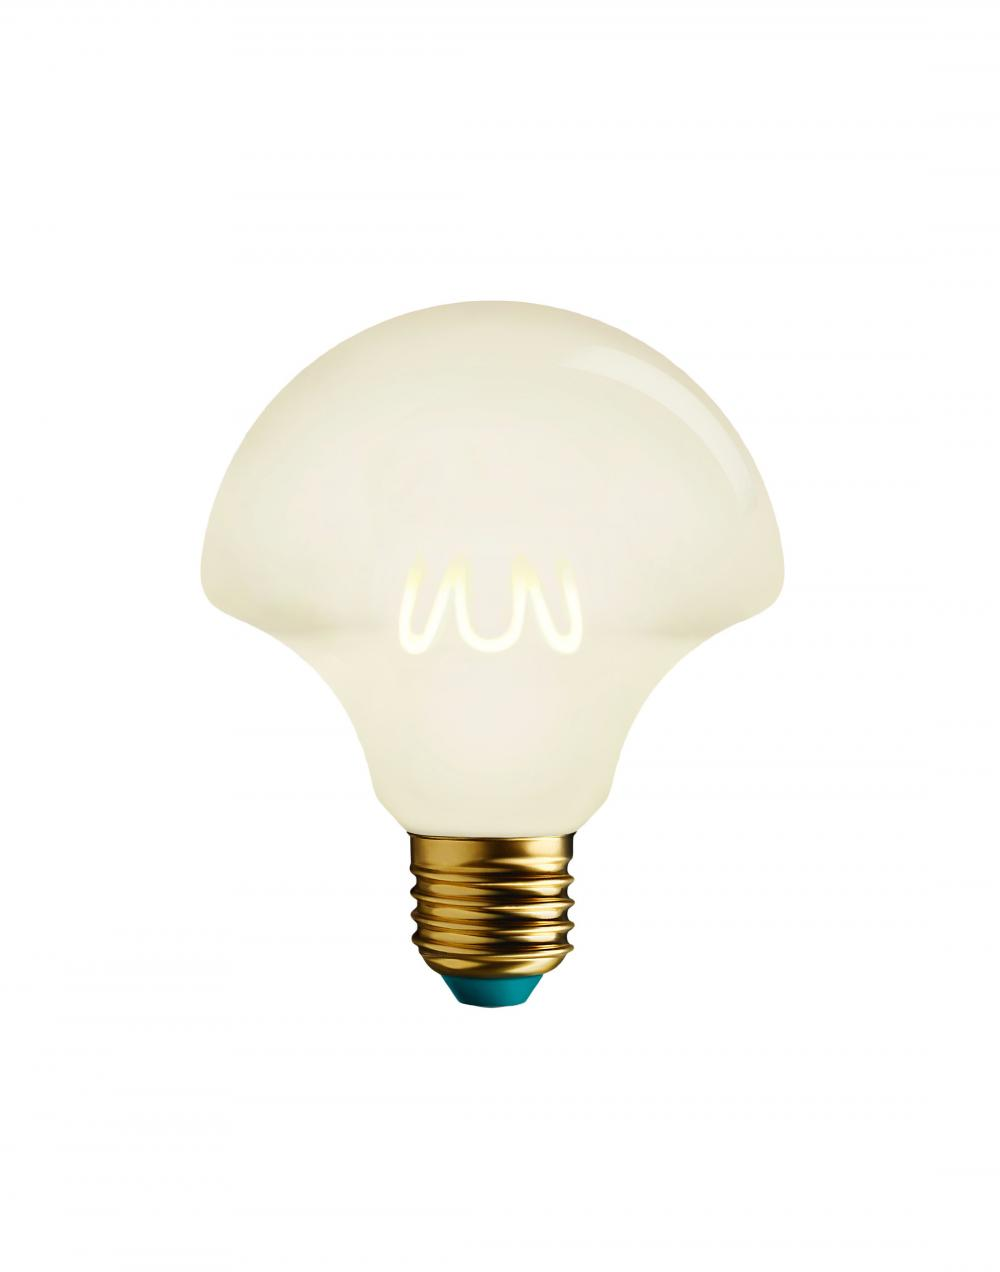 Plumen willow & wilma LED bulb